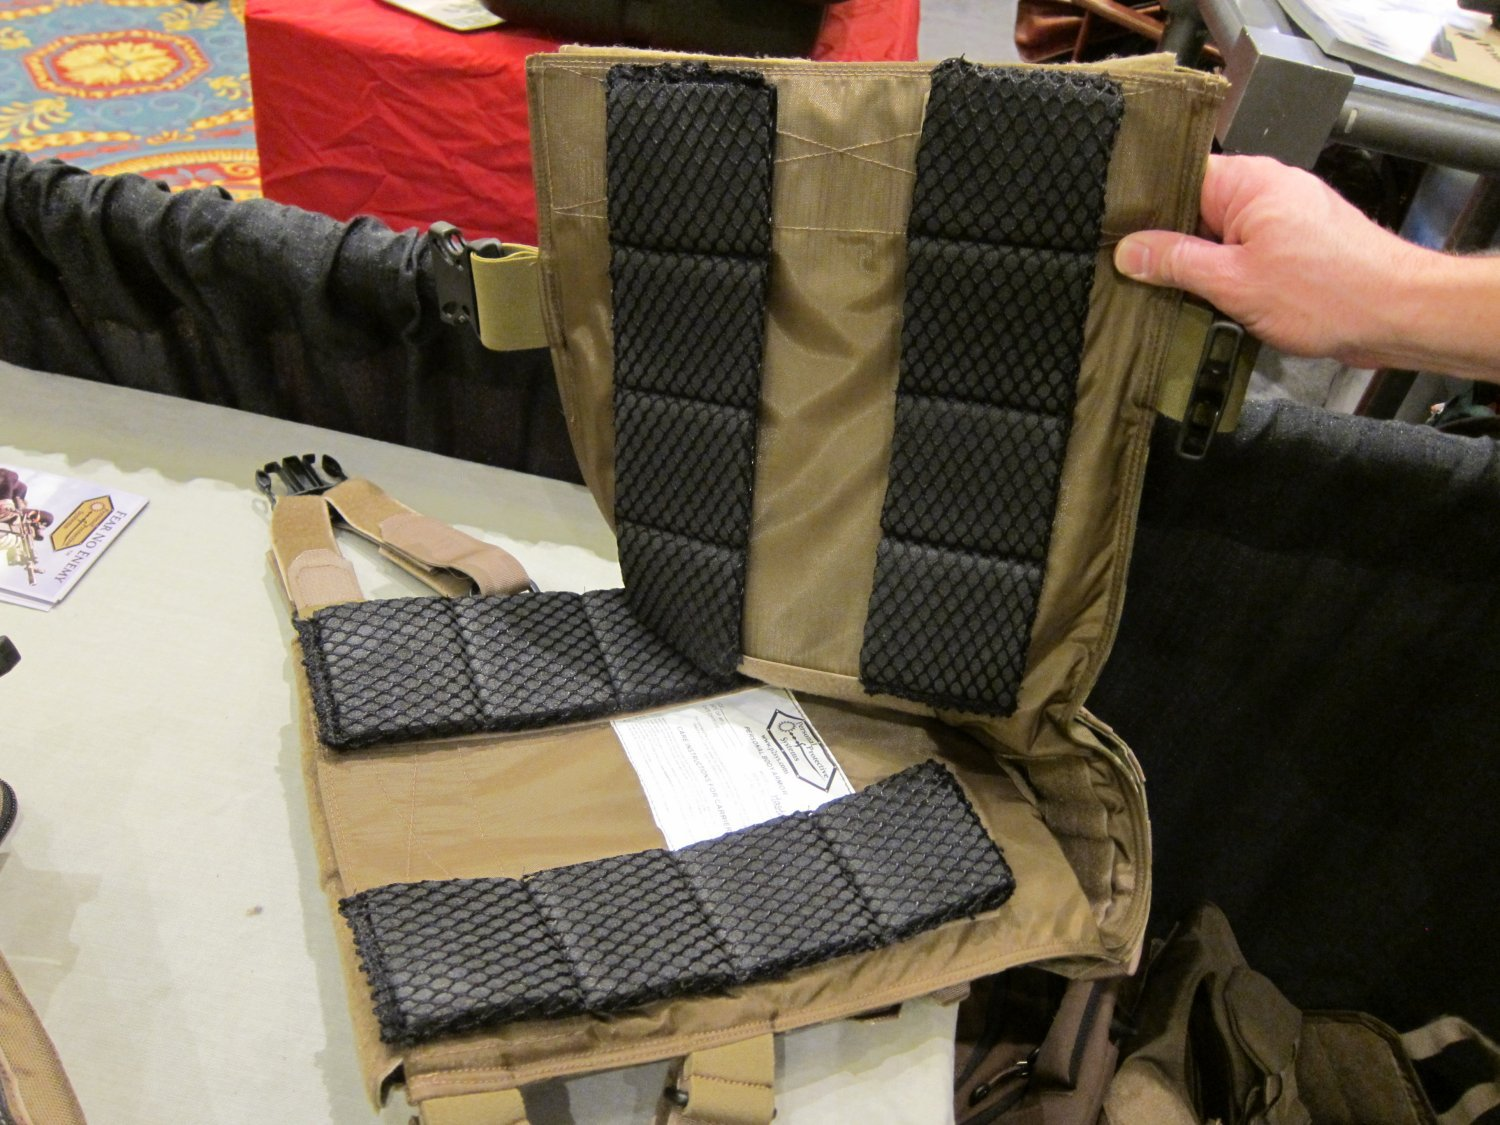 P2 Systems P2Sys Centurion Armour Modular Internal Pads for Body Armor Carrier Tactical Vests and Plate Carriers at SHOT Show 2011 2 <!  :en  >Hardpoint Equipment Tactical Armor Carriers (formerly Personal Protective Systems, or P2 Systems): Best Tactical Body Armor Plate Carriers on the Planet? DR Looks at the Latest Hard Point Hard Armor Plate Carriers, Battle Belt, MOLLE Backpack System, and Passive Ventilation Channels/Removable Padding System at SHOT Show 2011 (Photos and Video!) <!  :  >